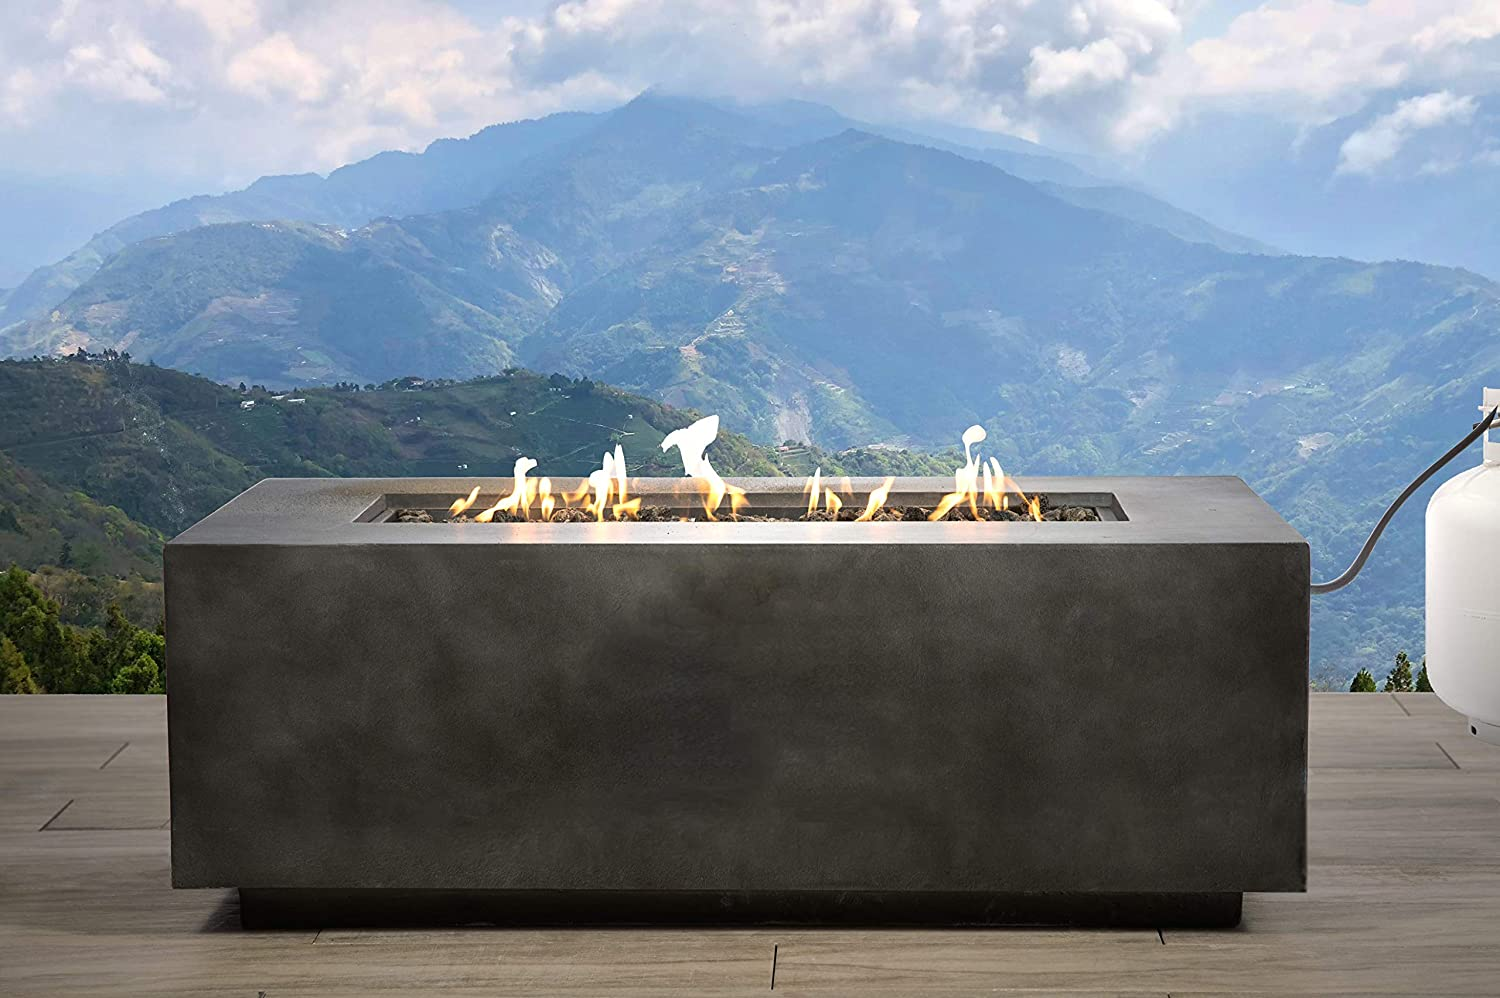 Fire Pit Large Concrete Propane Gas Outdoor Fire Pit Rectangle Fireplace Home Furniture CM-1012G Black